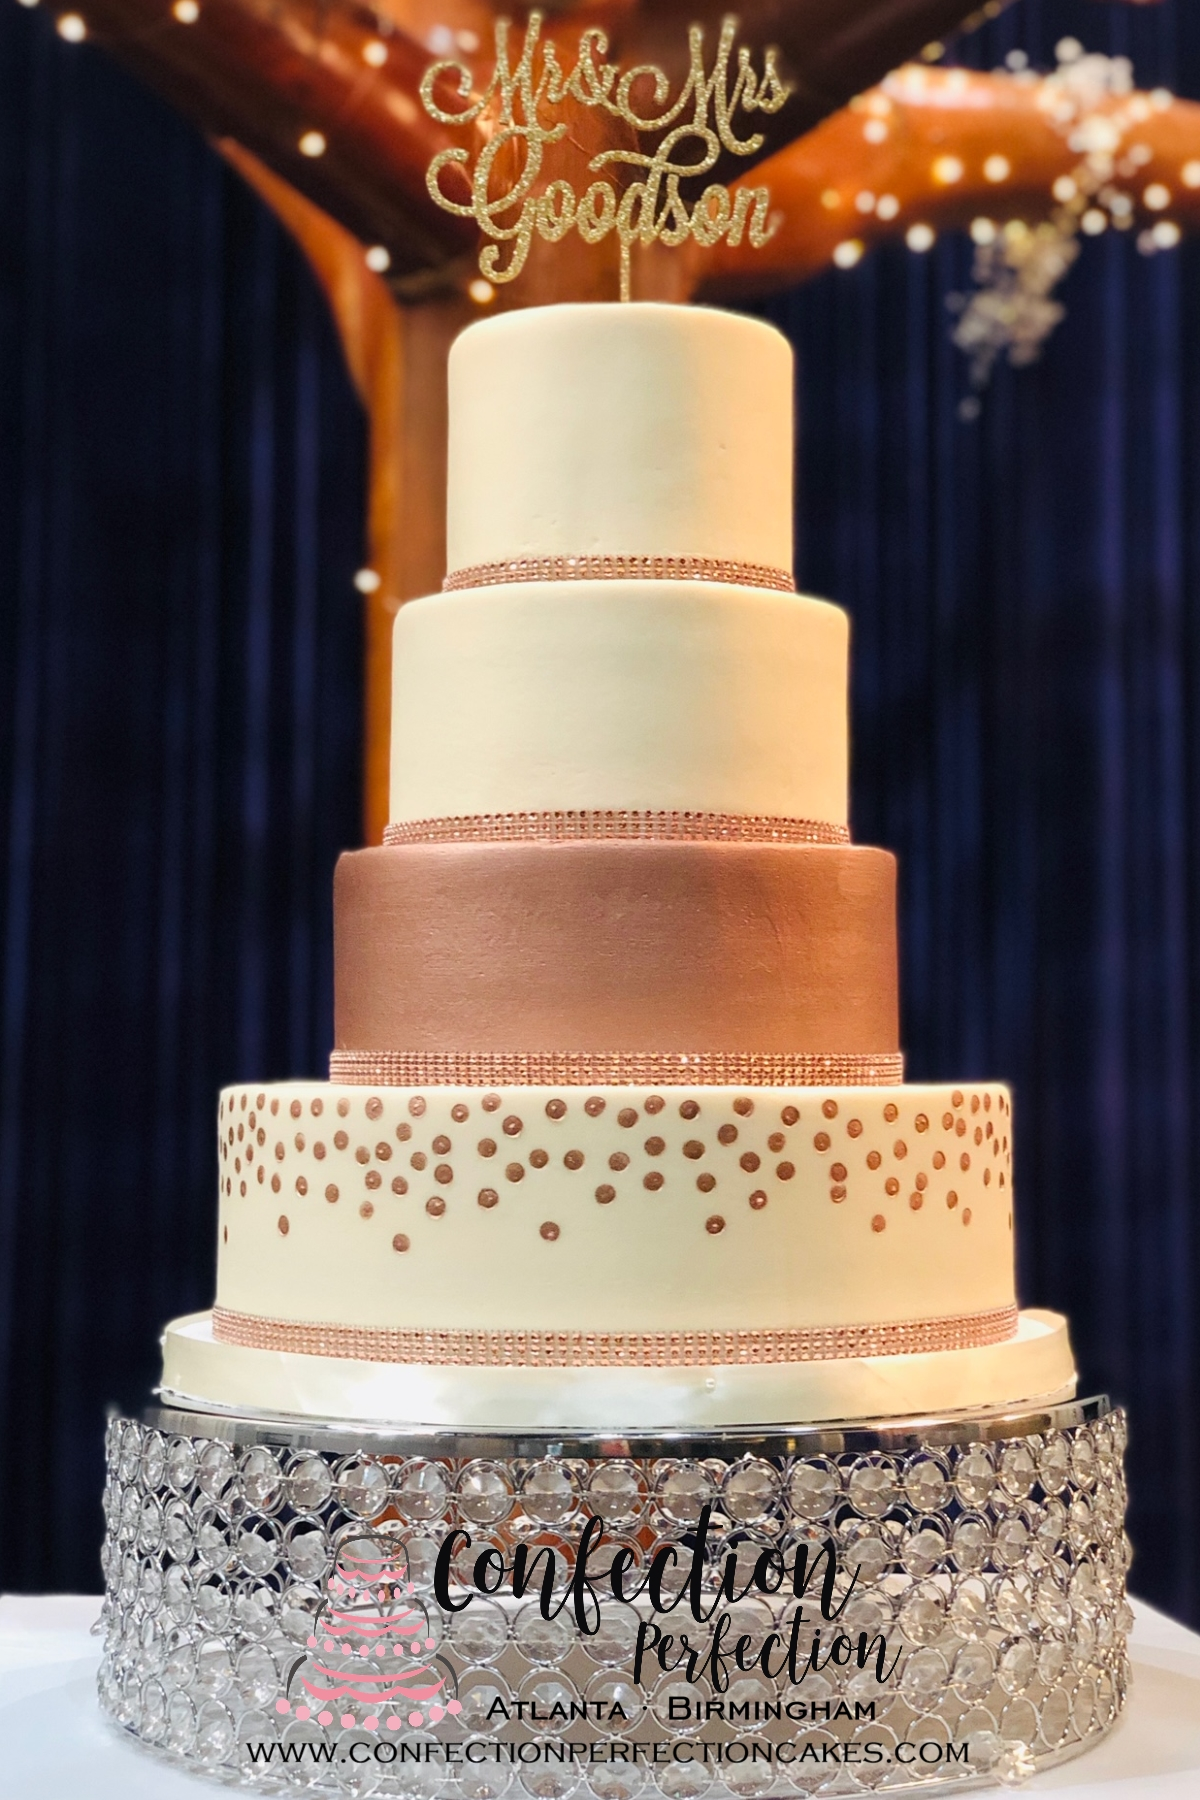 Wedding Cake Gallery | Confection Perfection | Atlanta